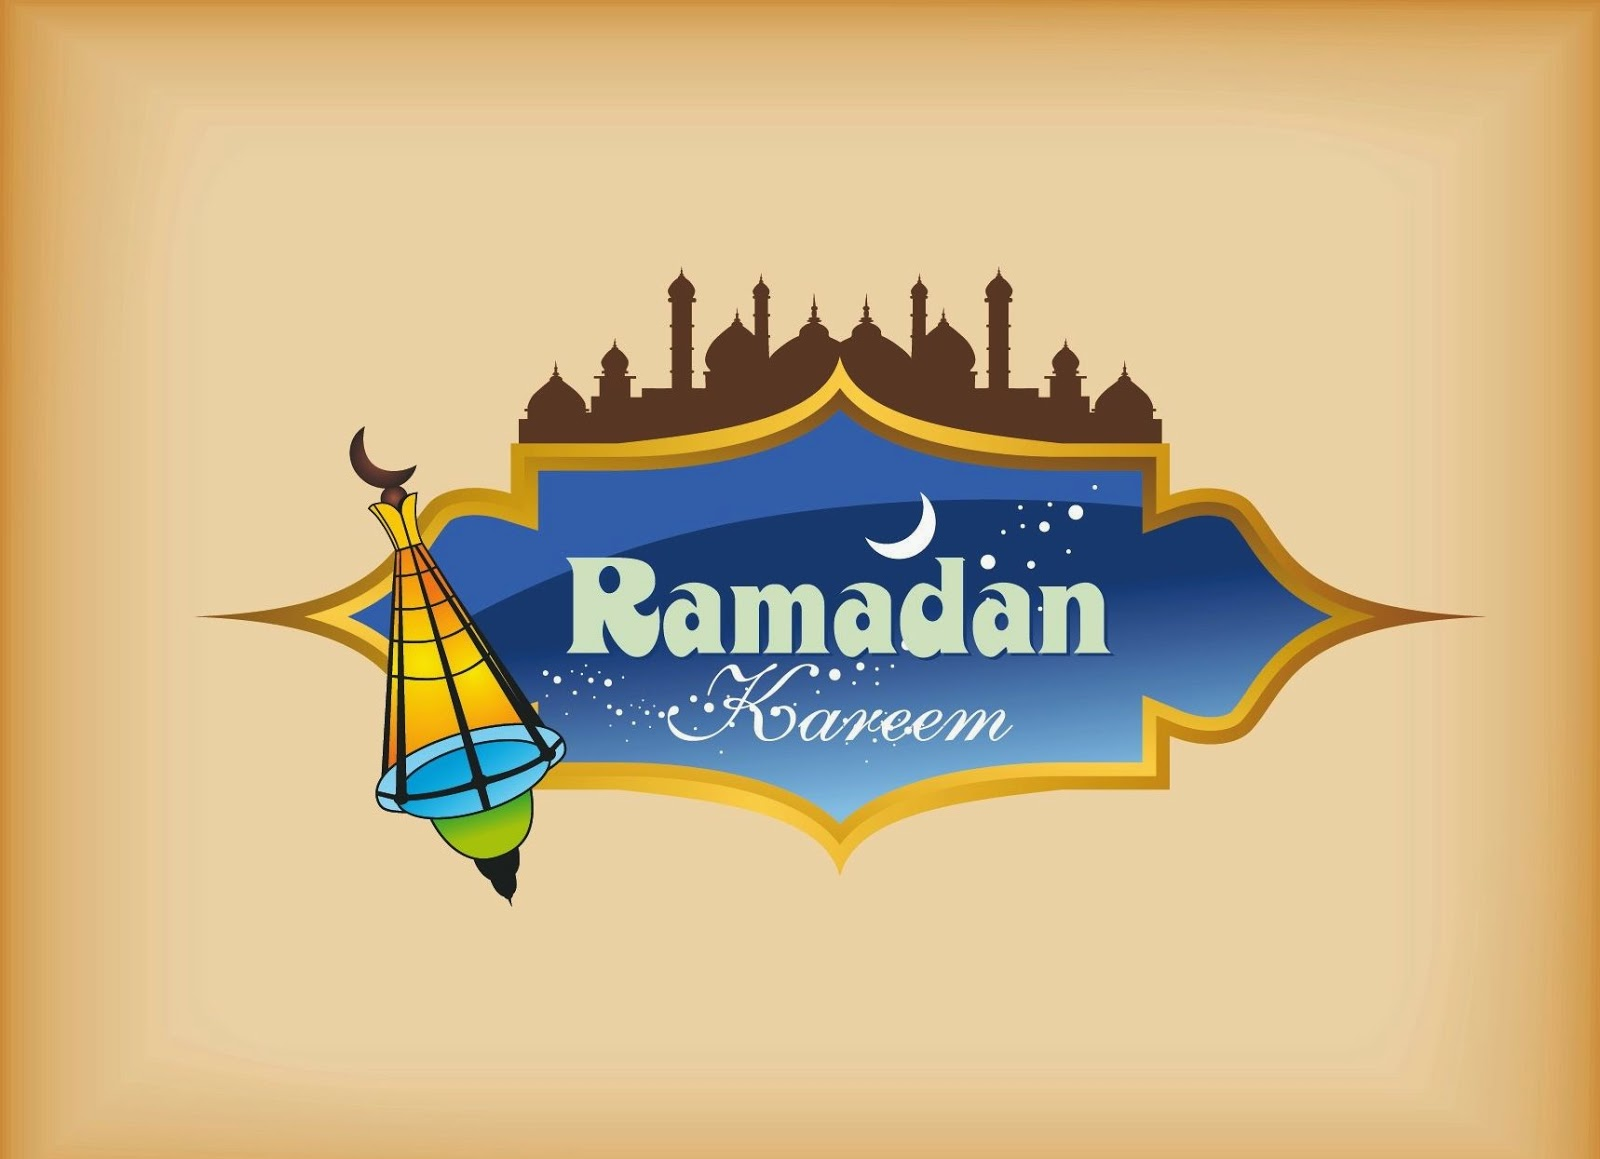 Wallpaper Ramadhan Lucu - impremedia.net